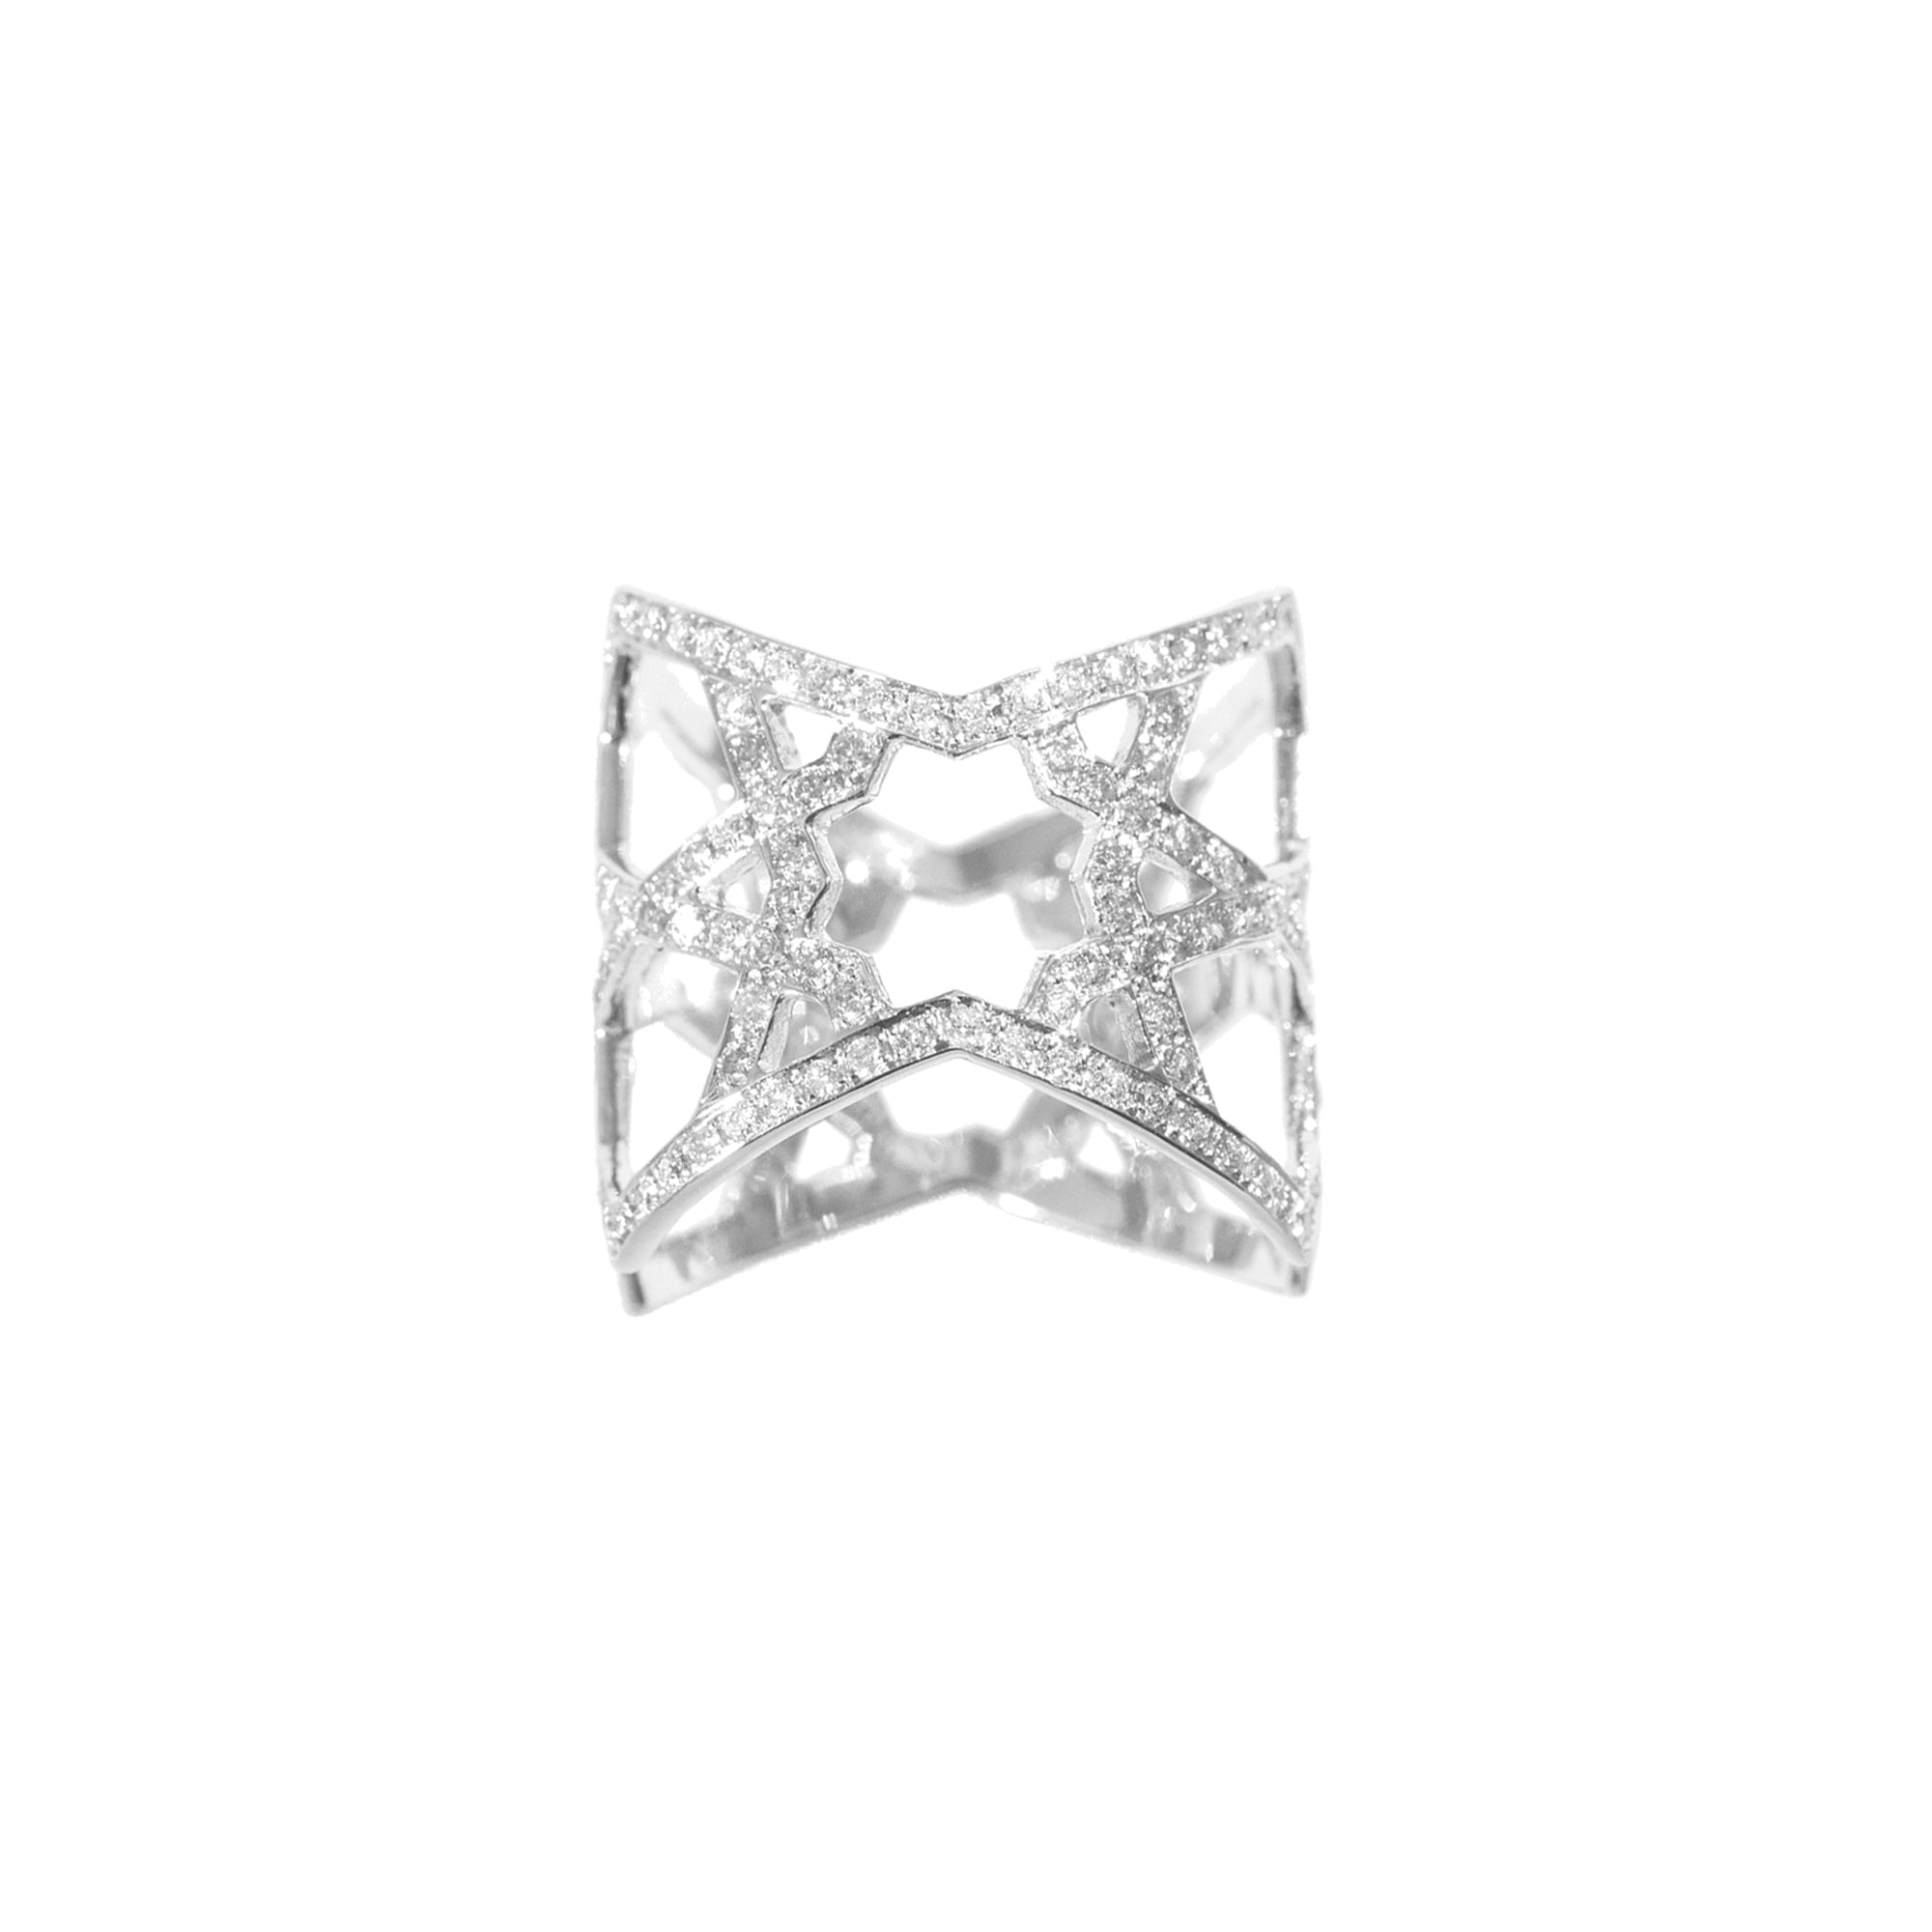 Ralph Masri Arabesque Deco Ring - White Gold - Rings - Broken English Jewelry